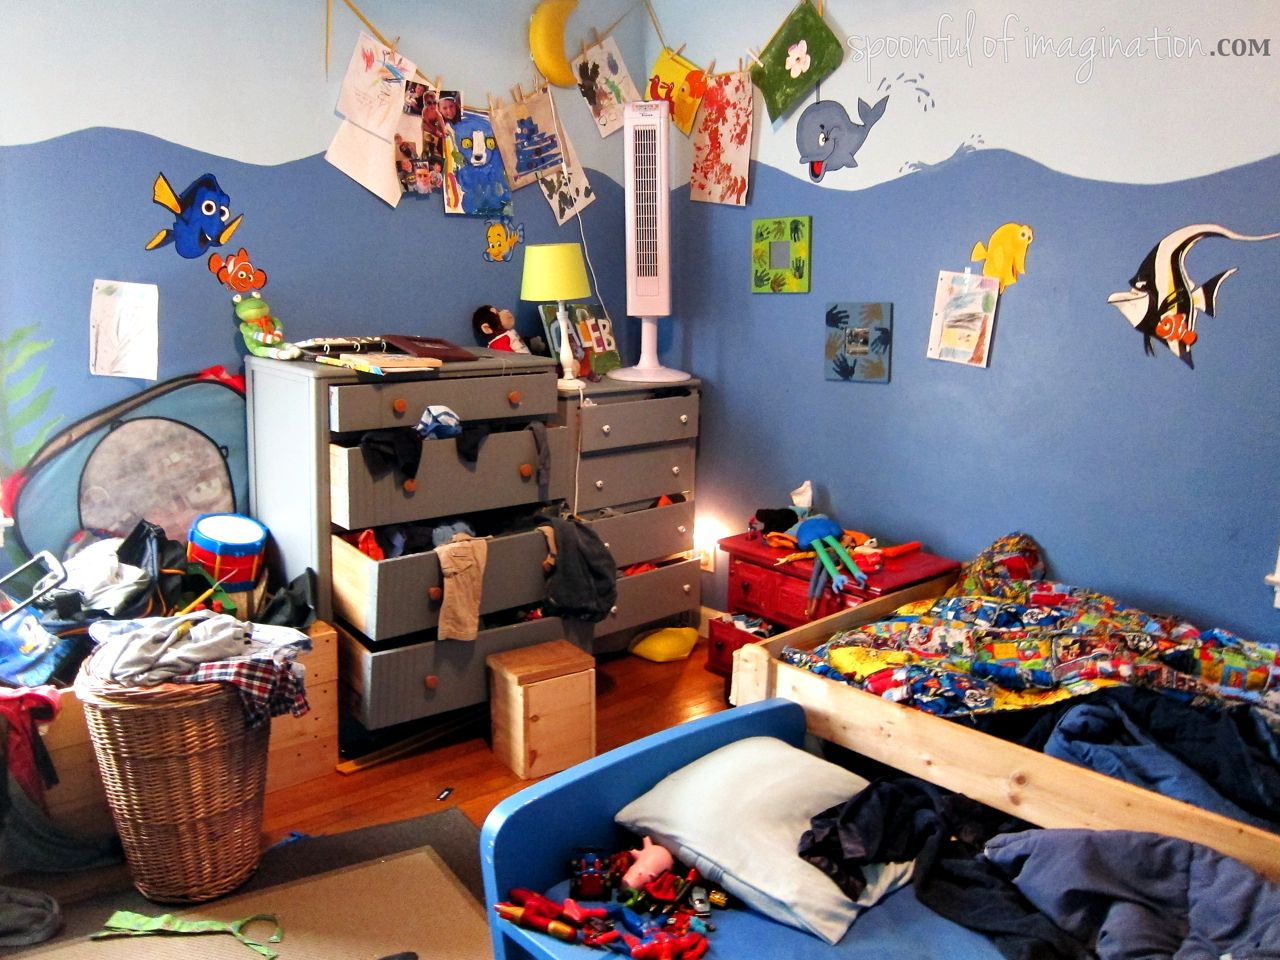 Room clipart cluttered room #6